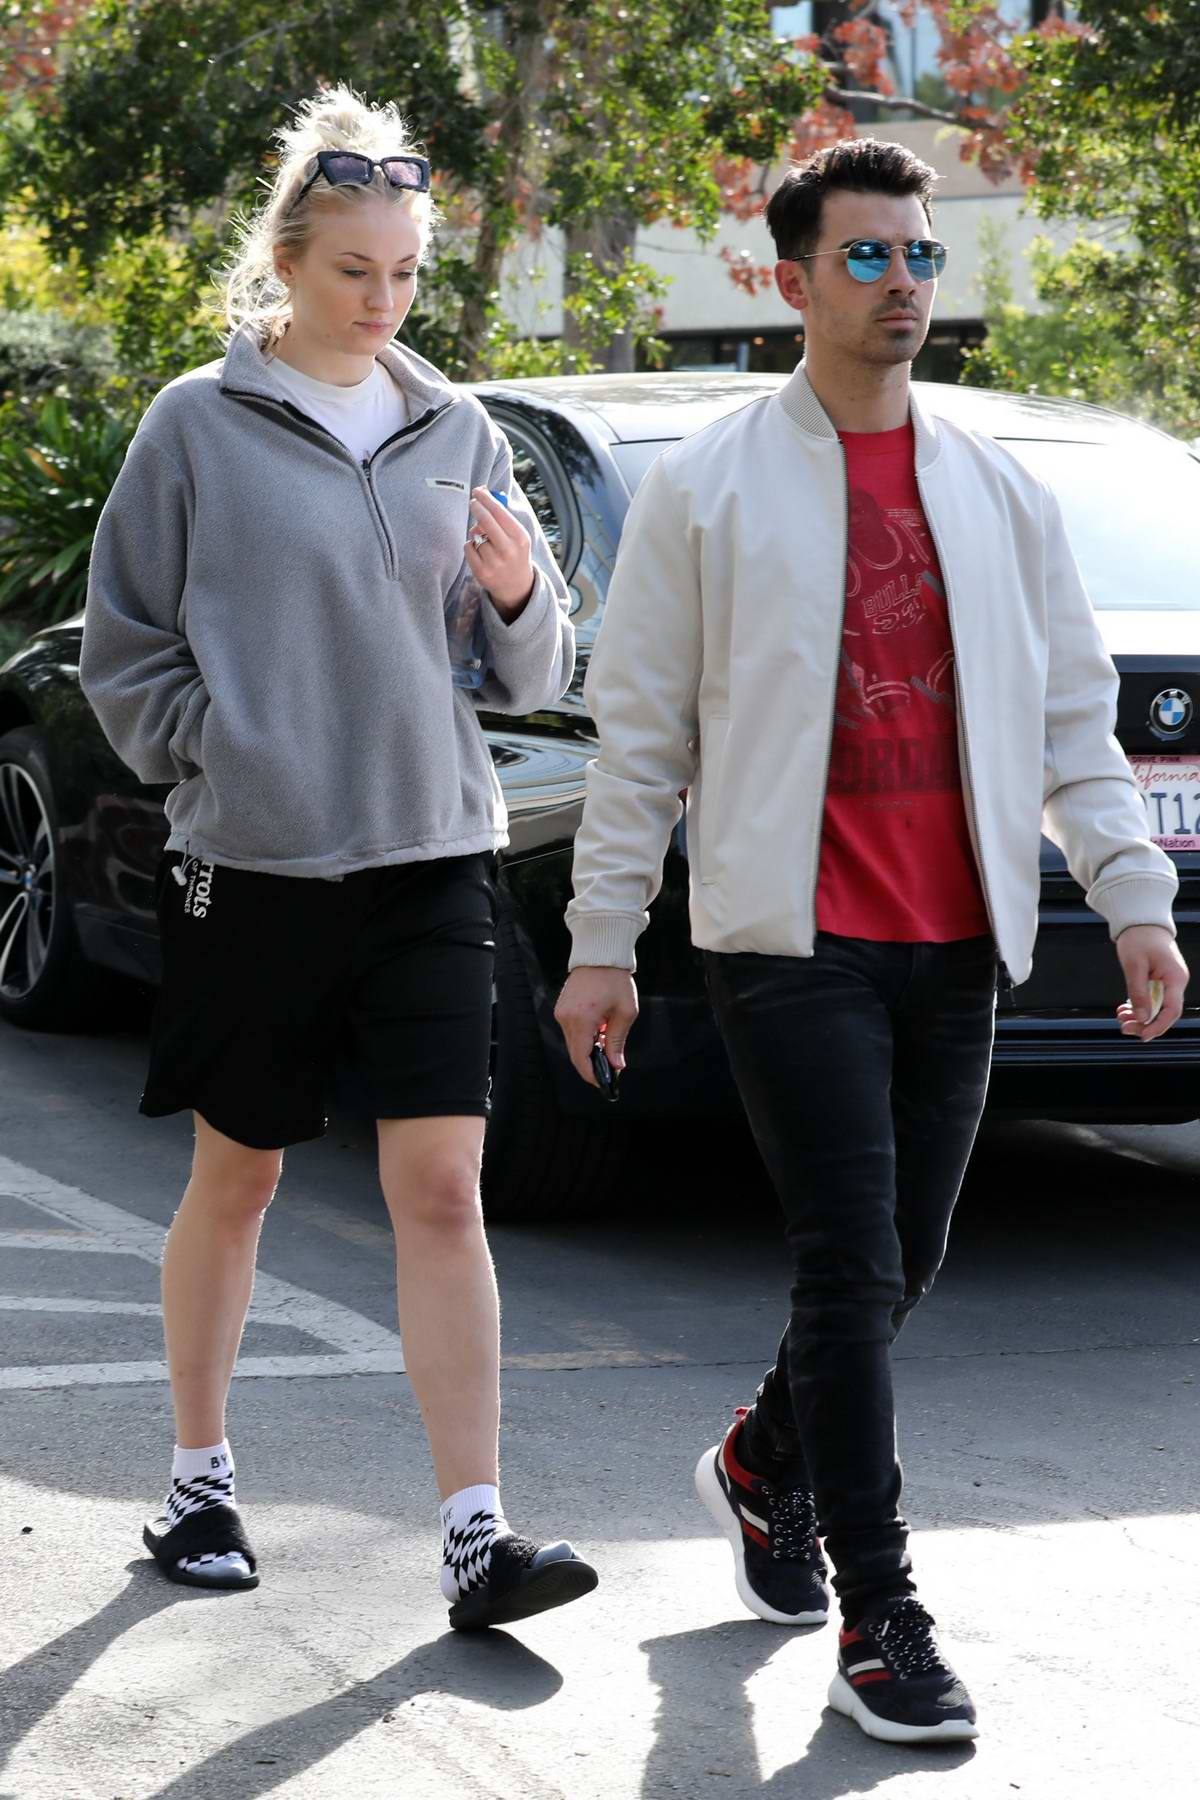 Sophie Turner and Joe Jonas step out for a casual walk in Los Angeles